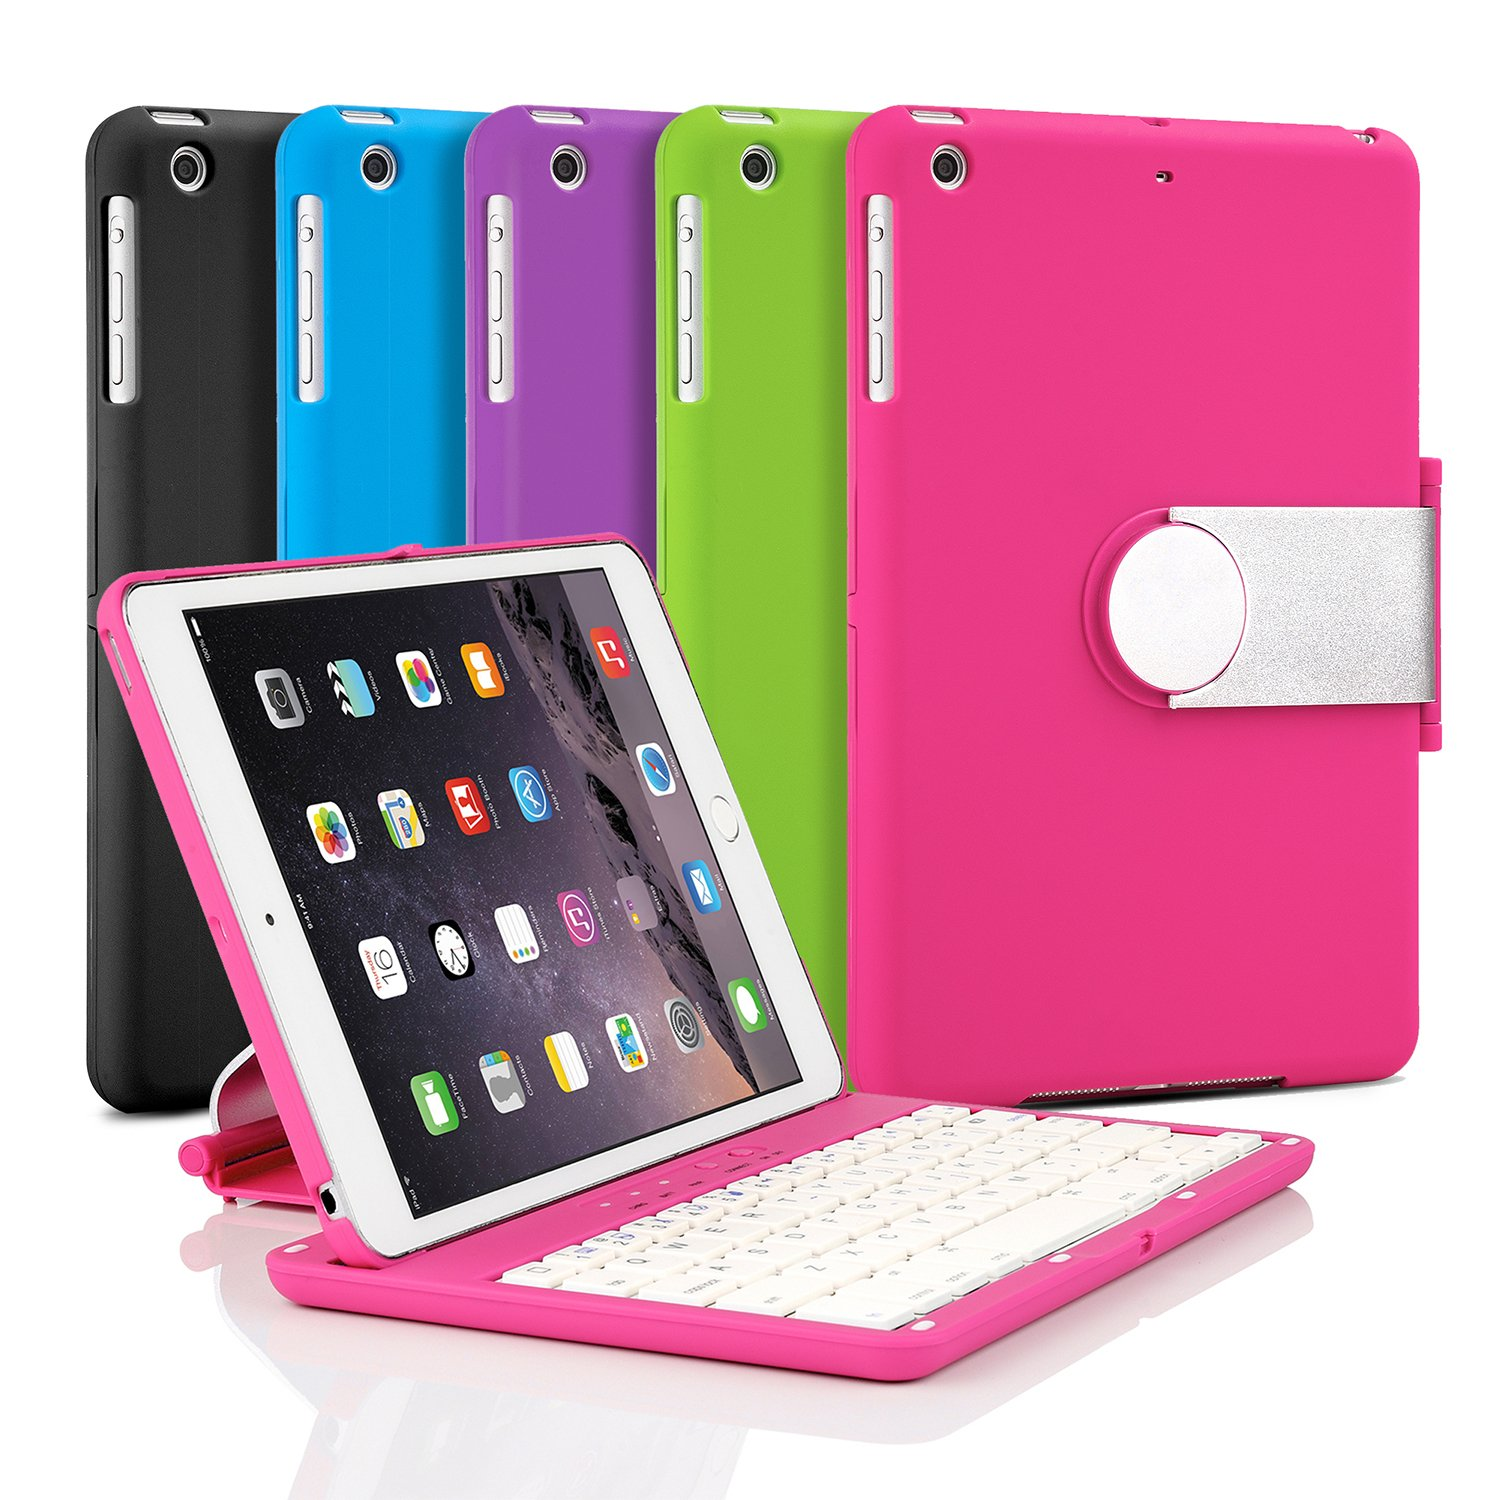 iNNEXT Aluminum 360 Swivel Rotating Stand Case Cover Built-in Bluetooth Keyboard for ipad Mini 1 2 3 with Retina Display (Hot Pink) by iNNEXT (Image #7)